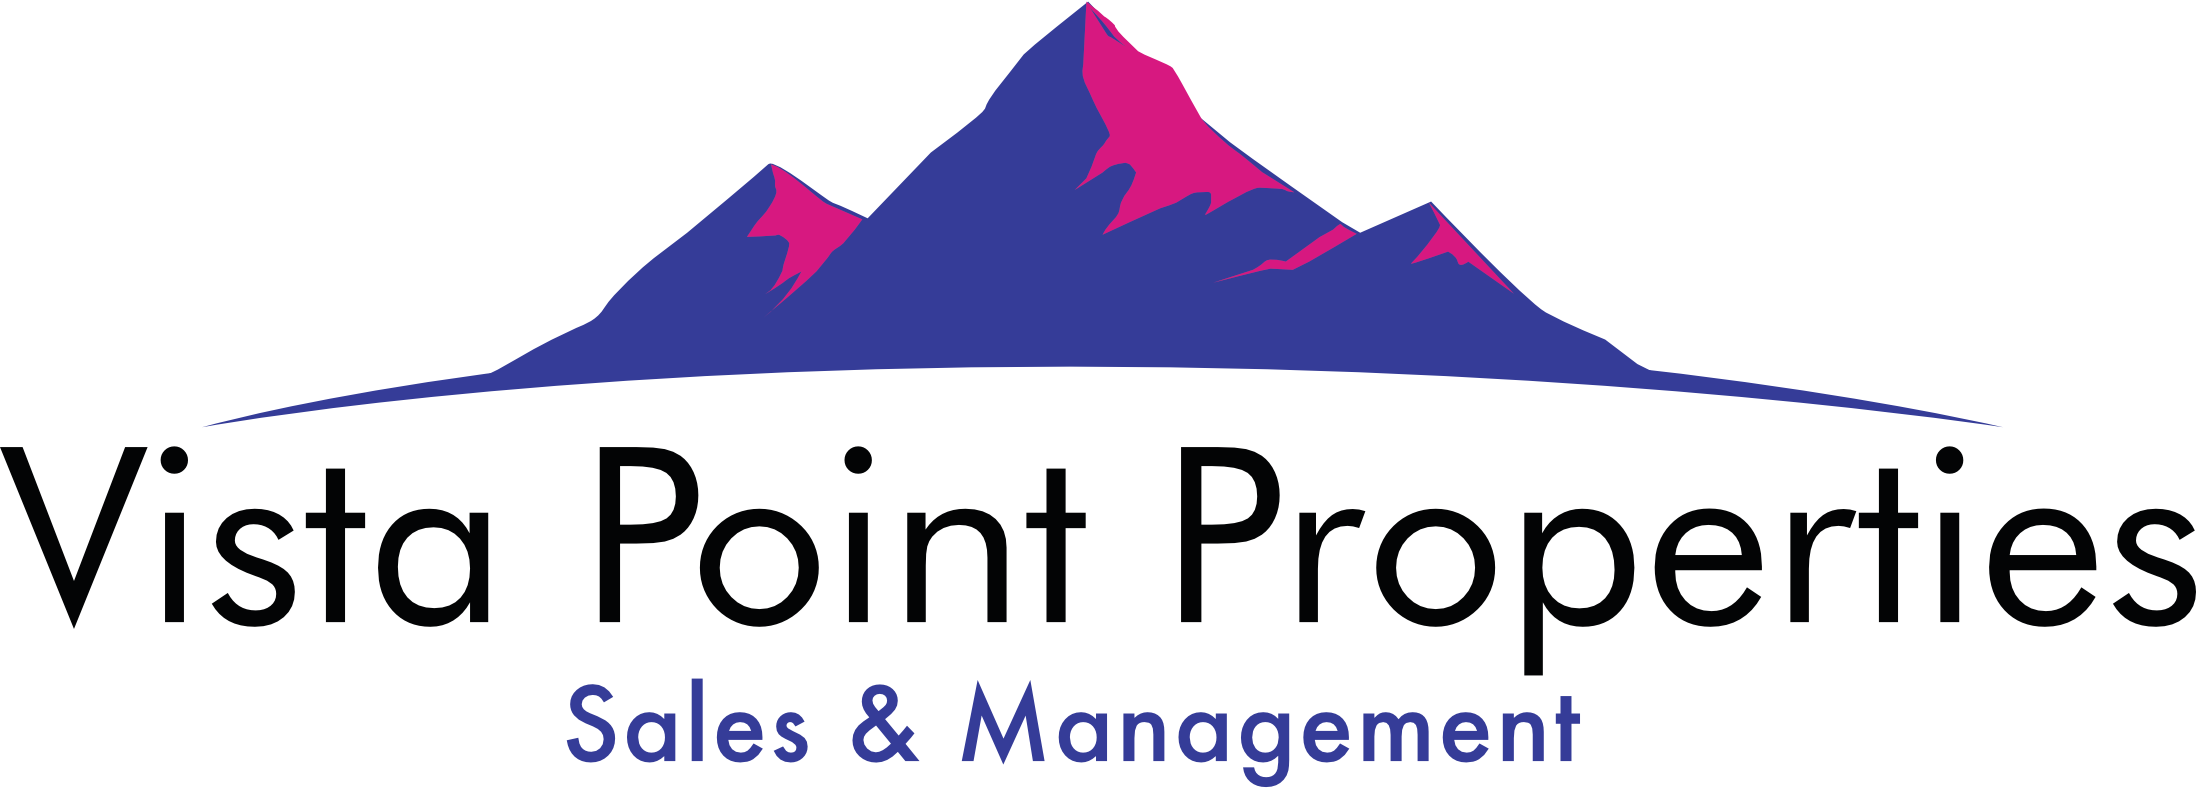 Vista Point Properties |   Frequently Asked Questions